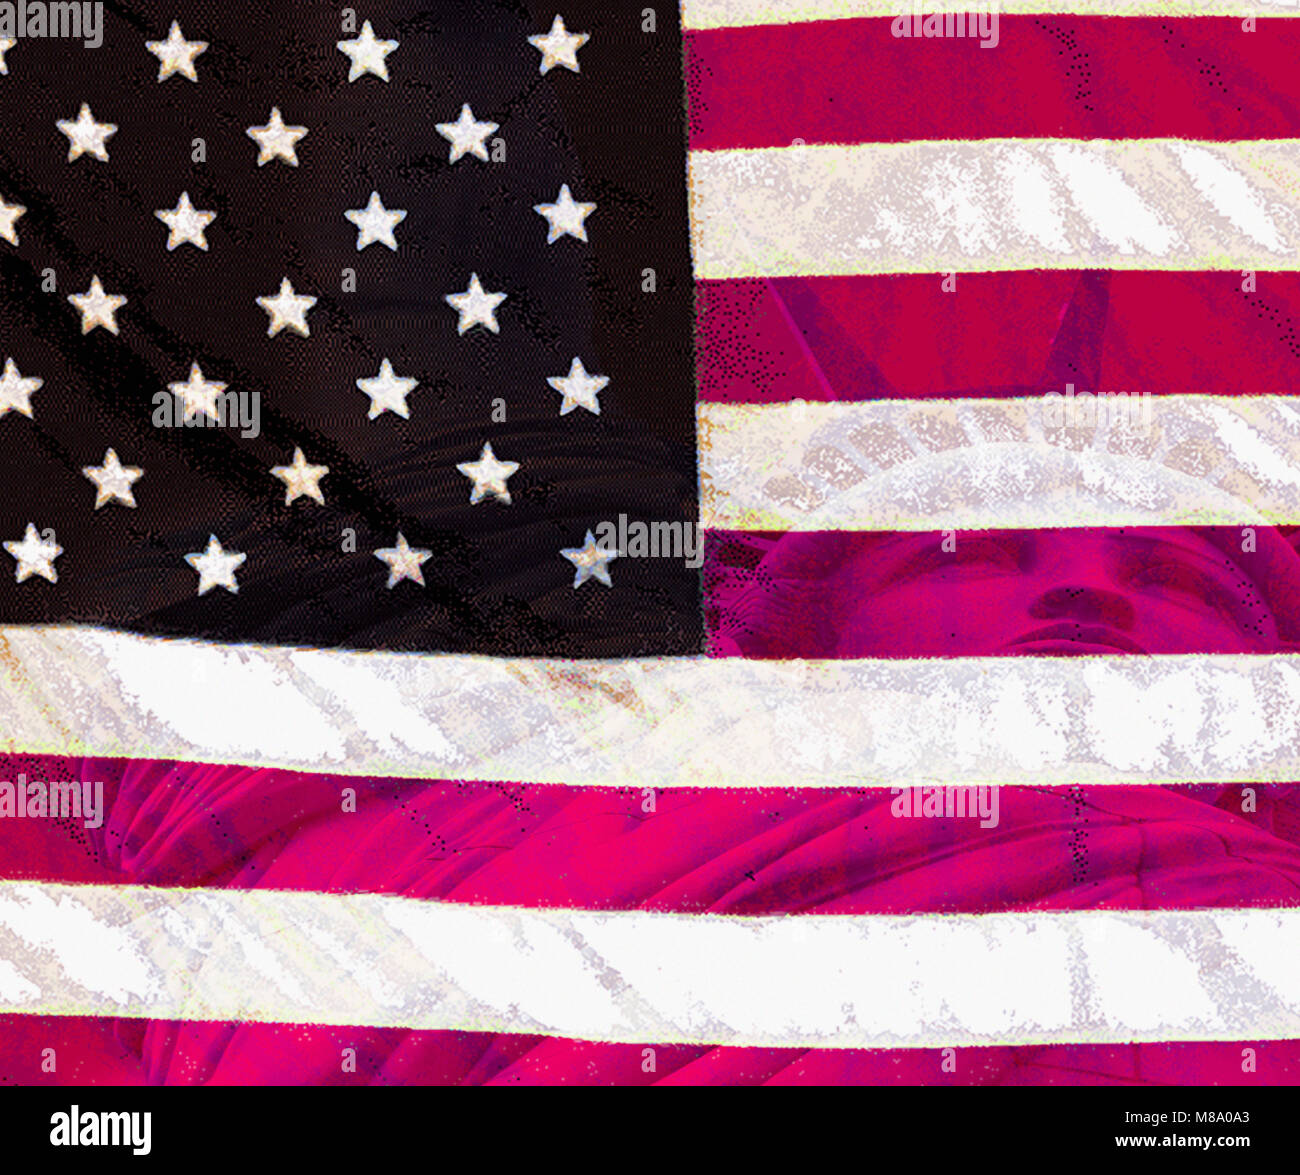 Primative American Flag with the Statue of Liberty superimposed - Stock Image